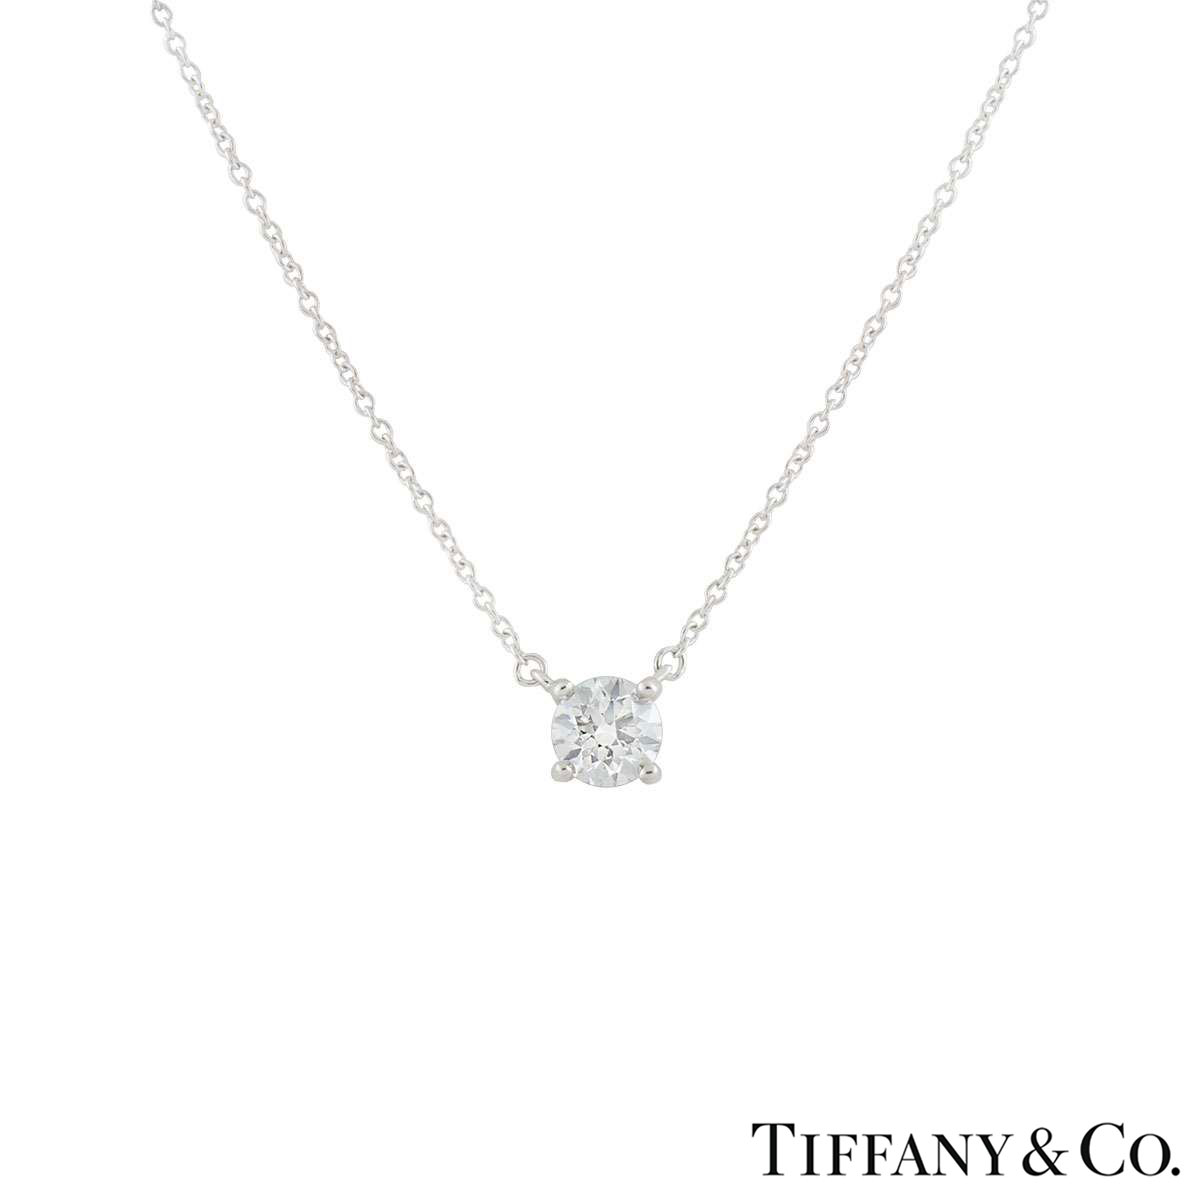 Tiffany & Co. Diamond Pendant XXX 0.61ct J/VS1